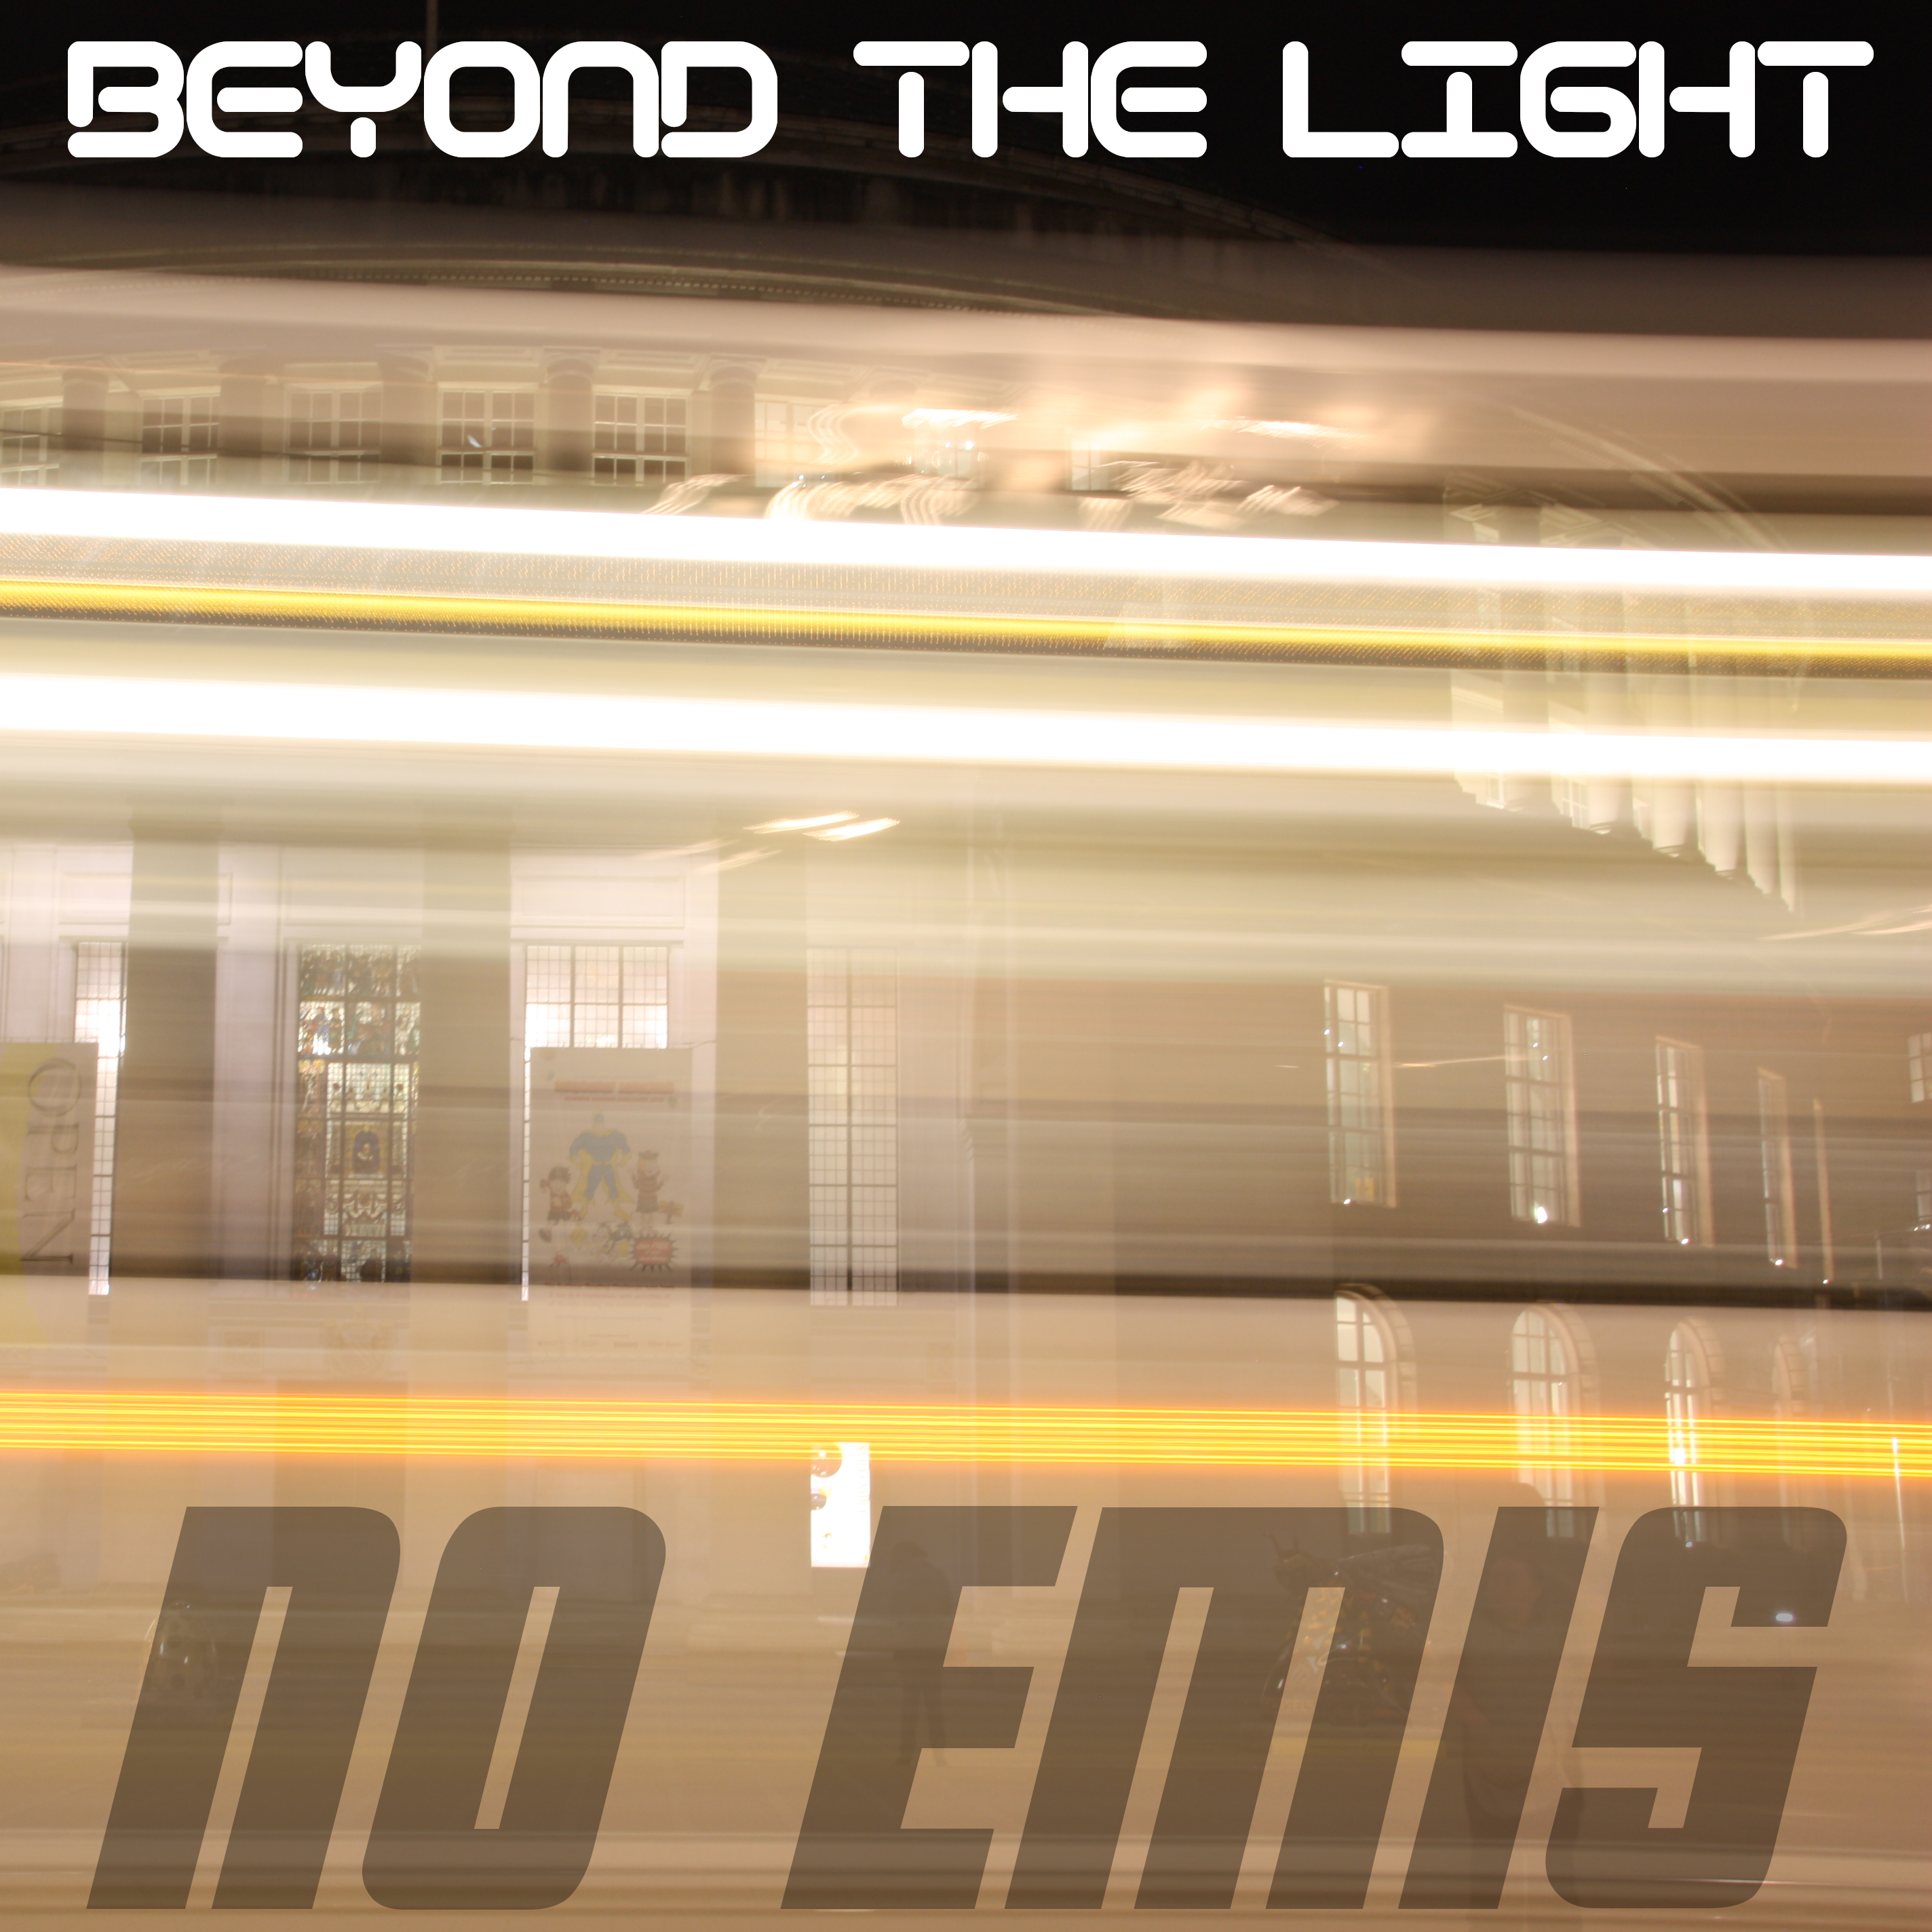 Beyond the light